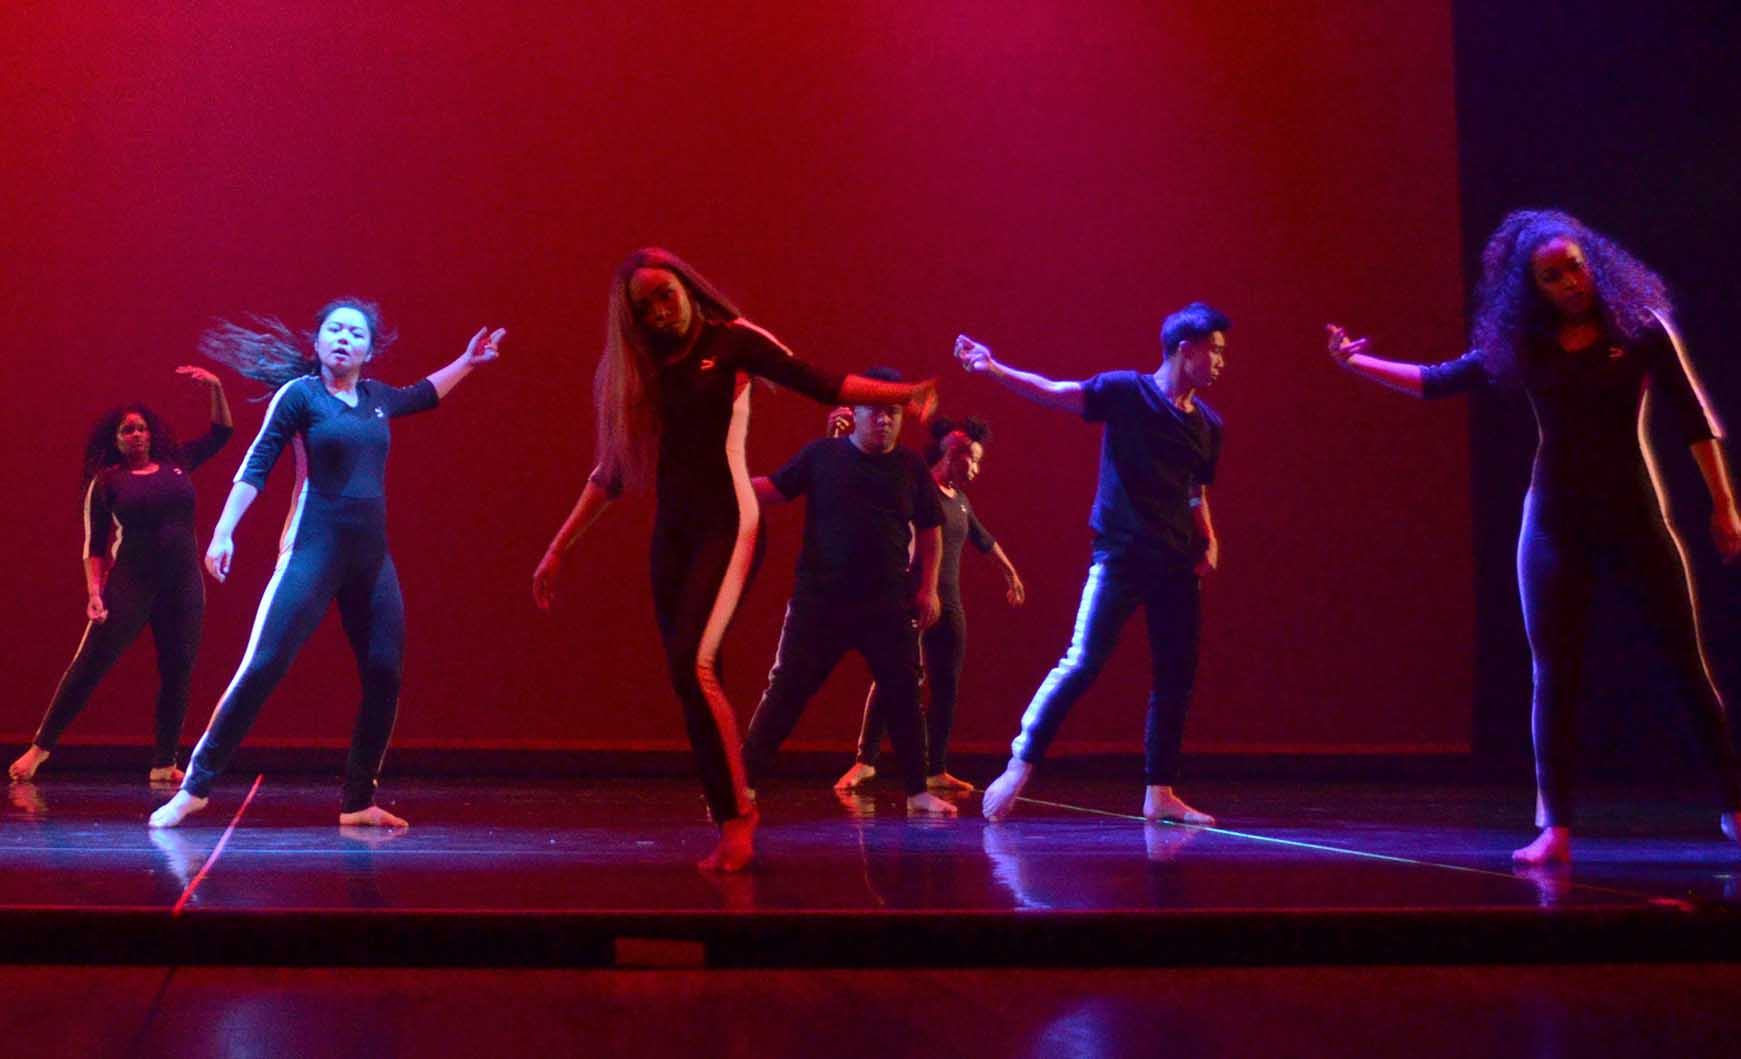 El Camino College student dance groups will present spring performances showcasing different dance styles as part of the El Camino College Center for the Arts' 50th anniversary season.